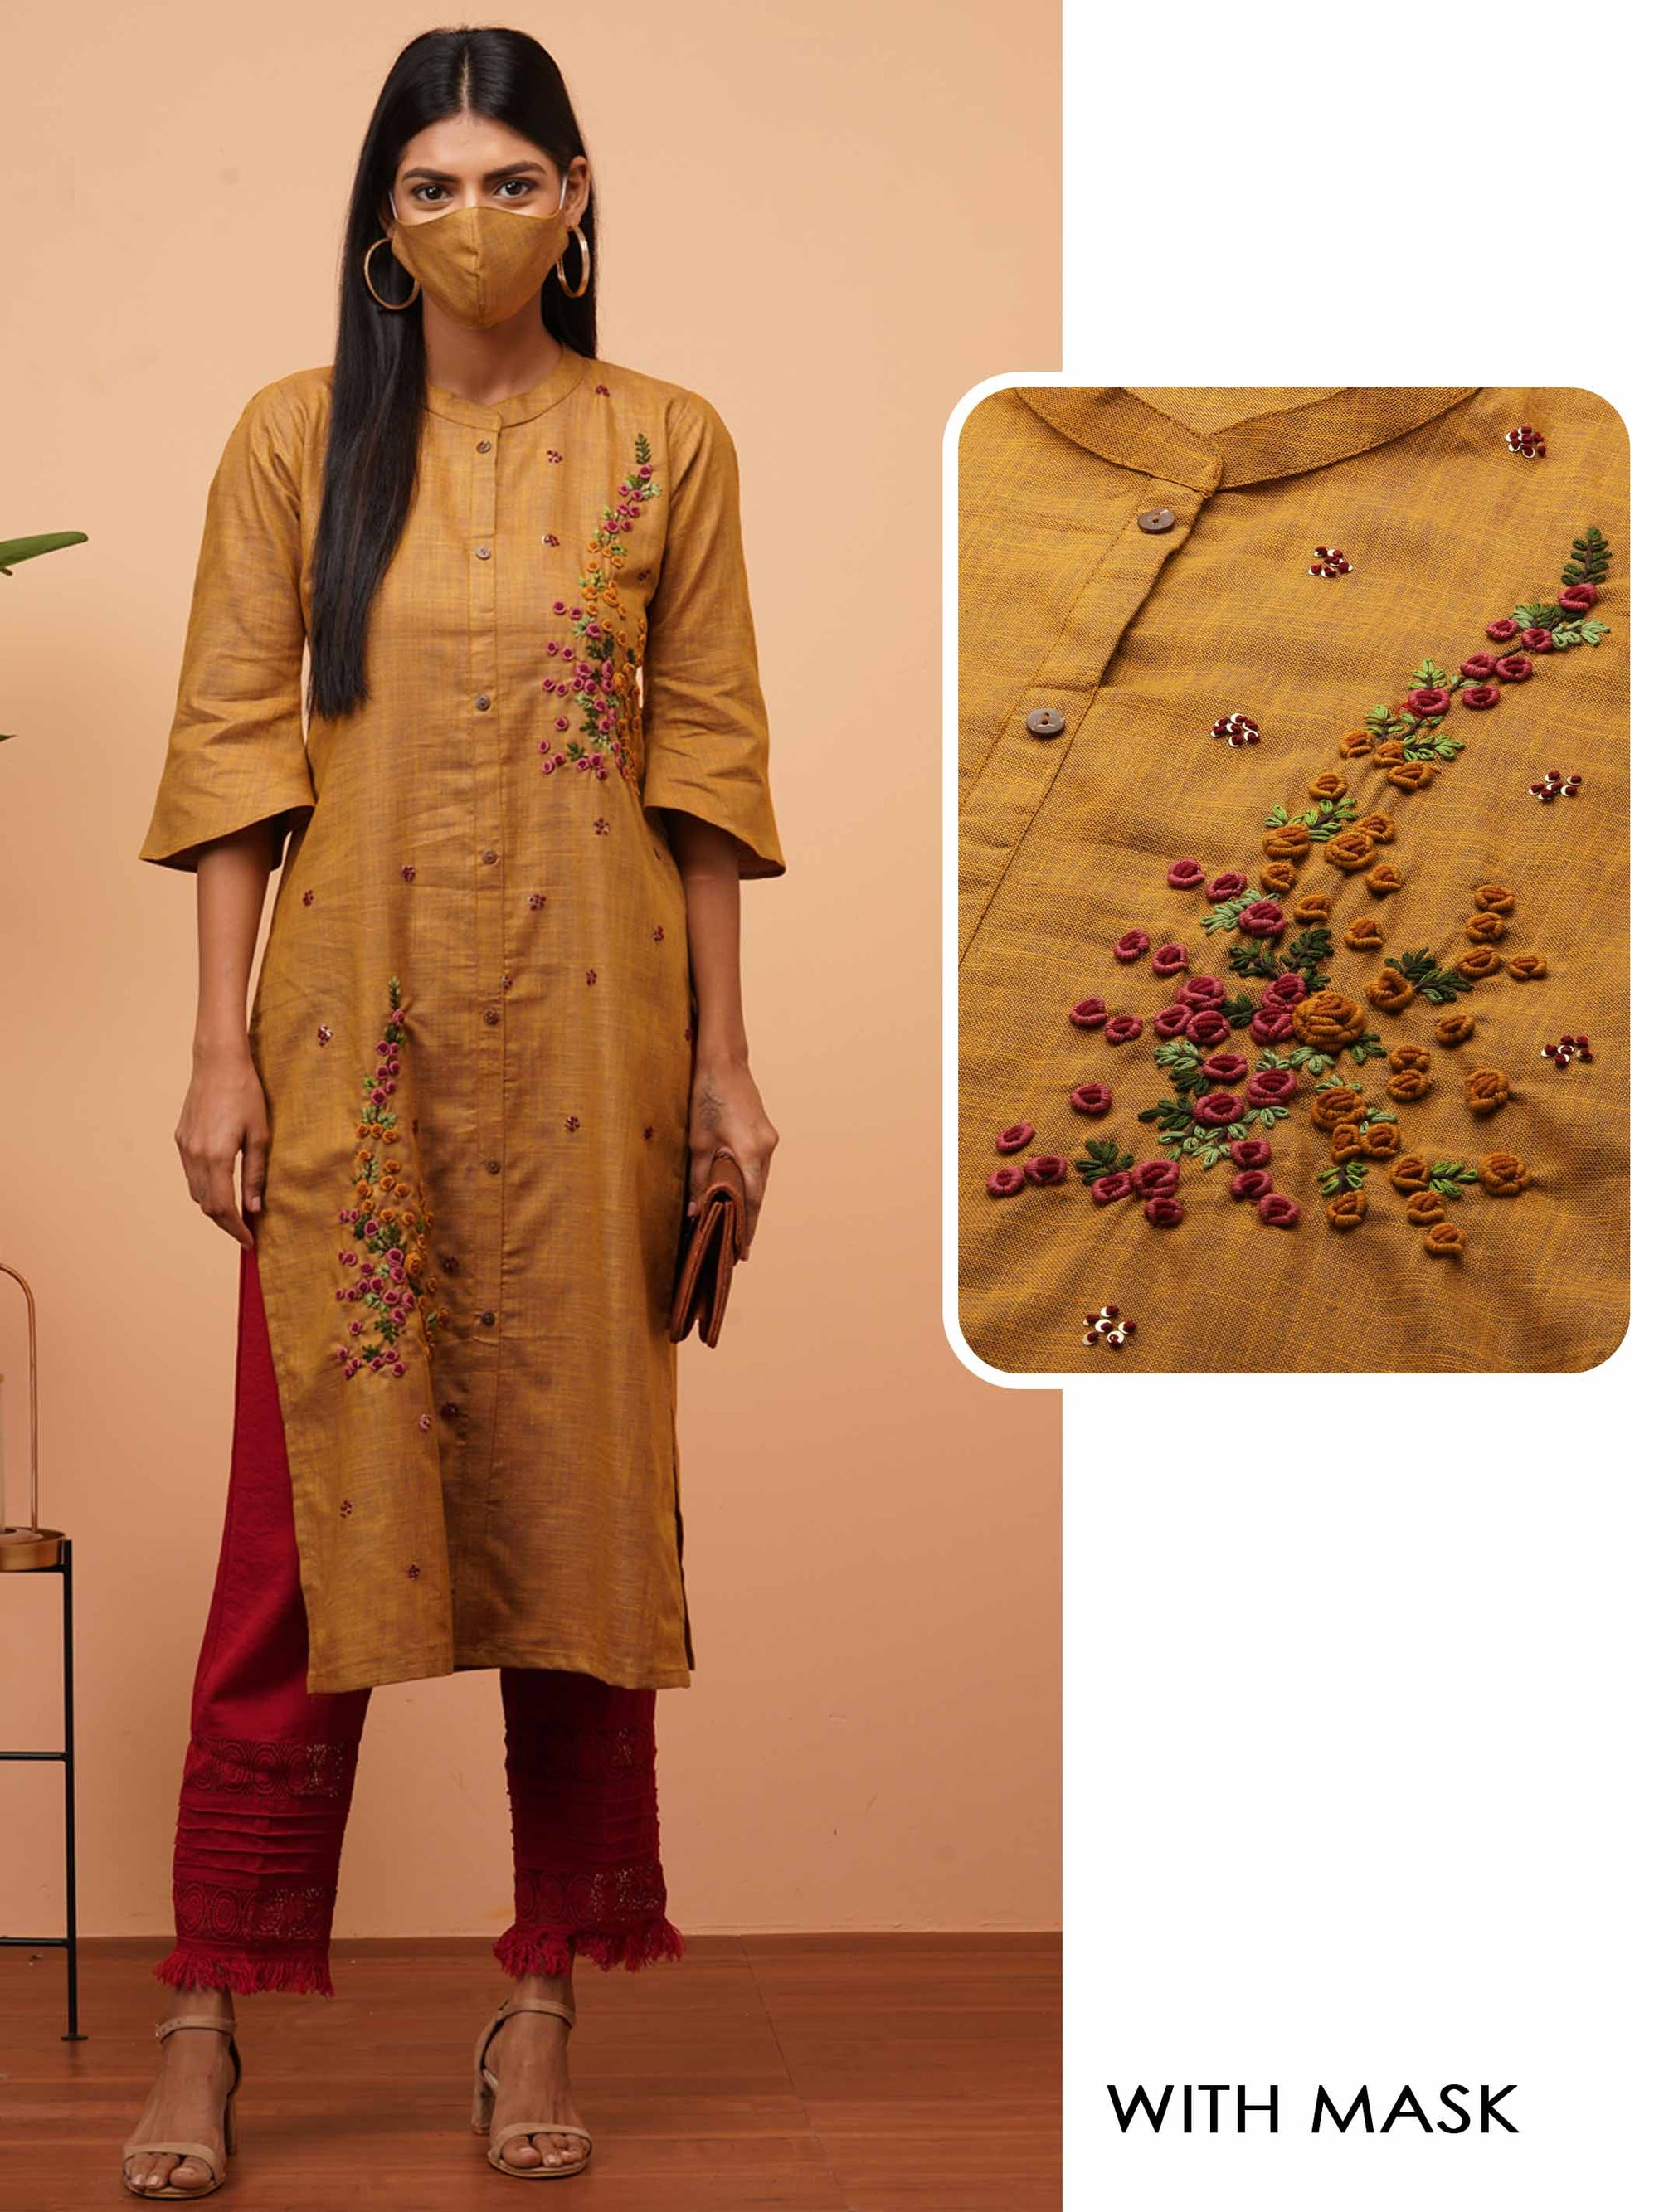 Floral Embroidered Straight Kurta with Matching 2-Ply Mask - Mud Brown